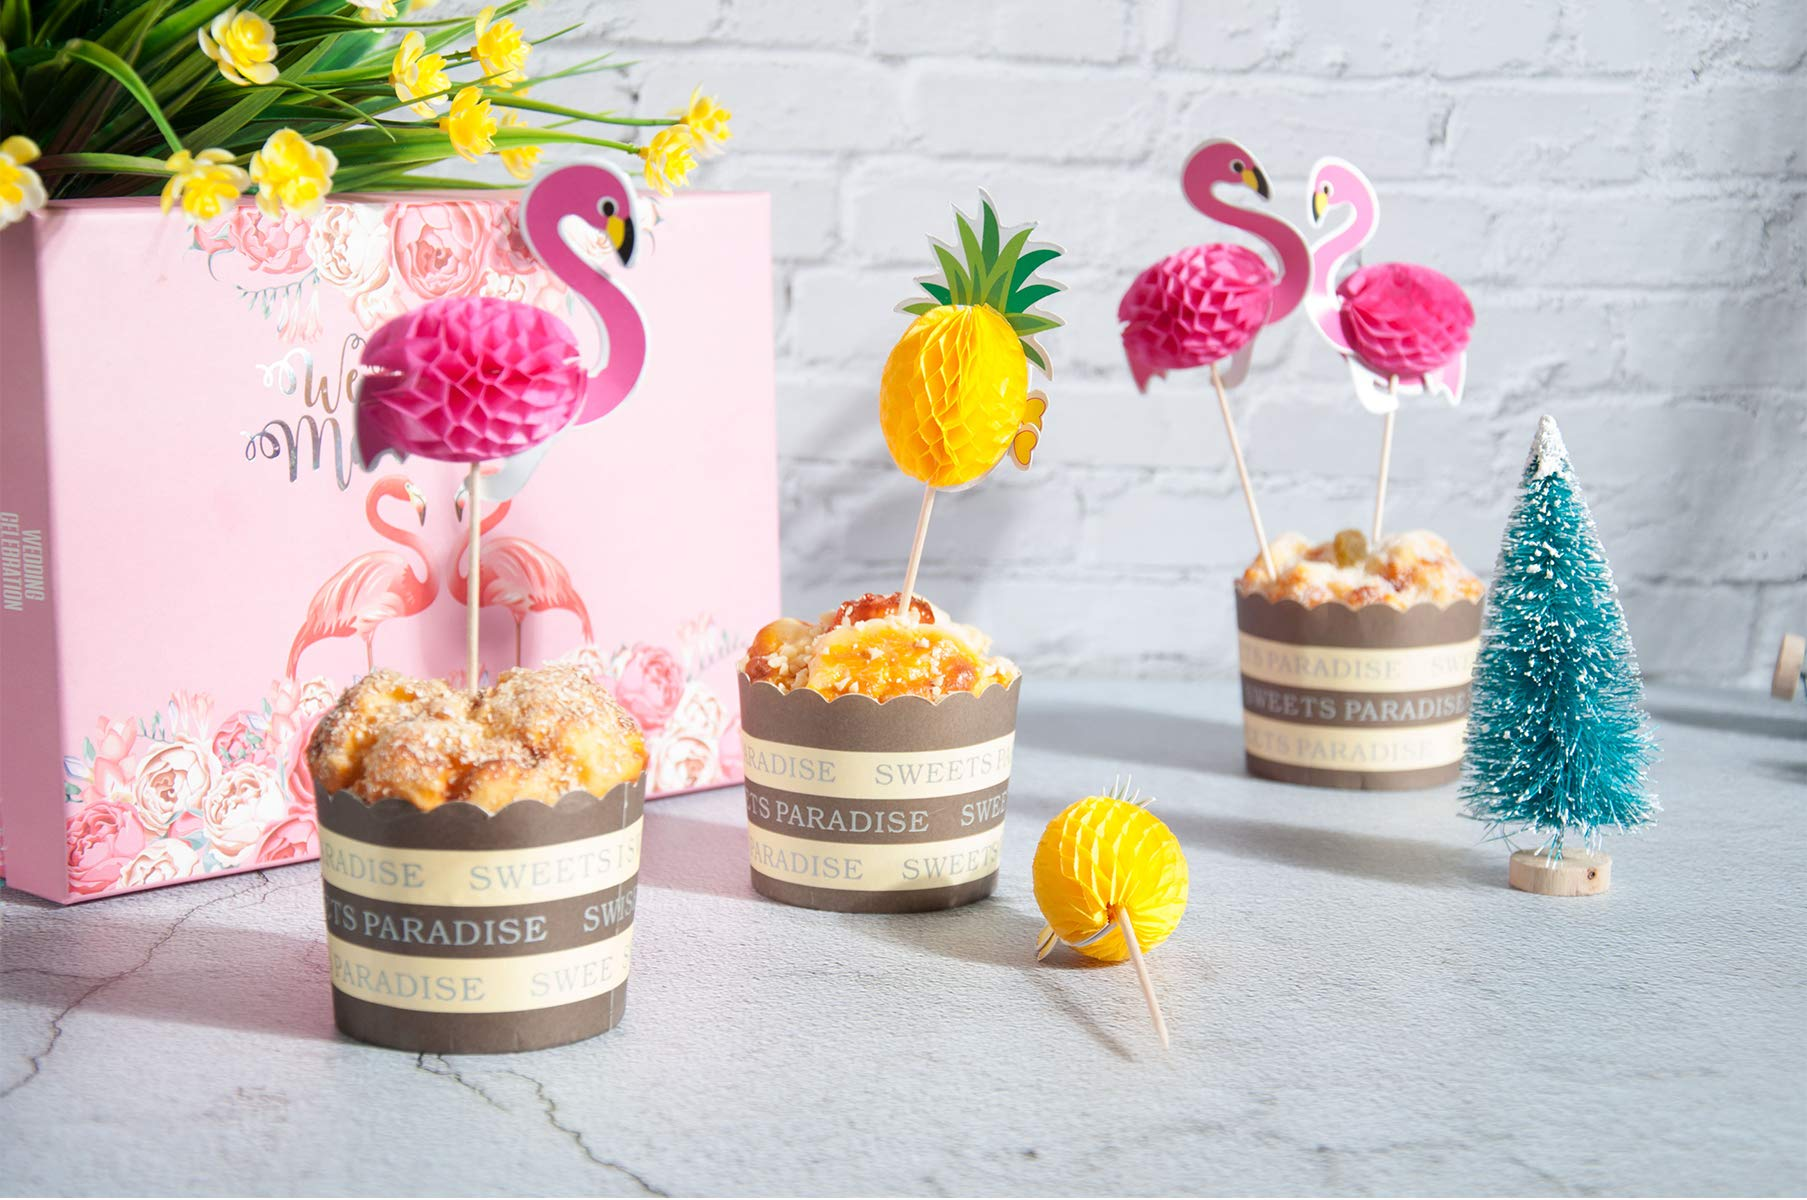 Lauren 48 Pcs Cupcake Toppers 3D Flamingo and Pineapple Cupcakes Toppers Food Picks Party Cocktail for Party Tropical Cupcake Picks Decoration by Lauren (Image #1)